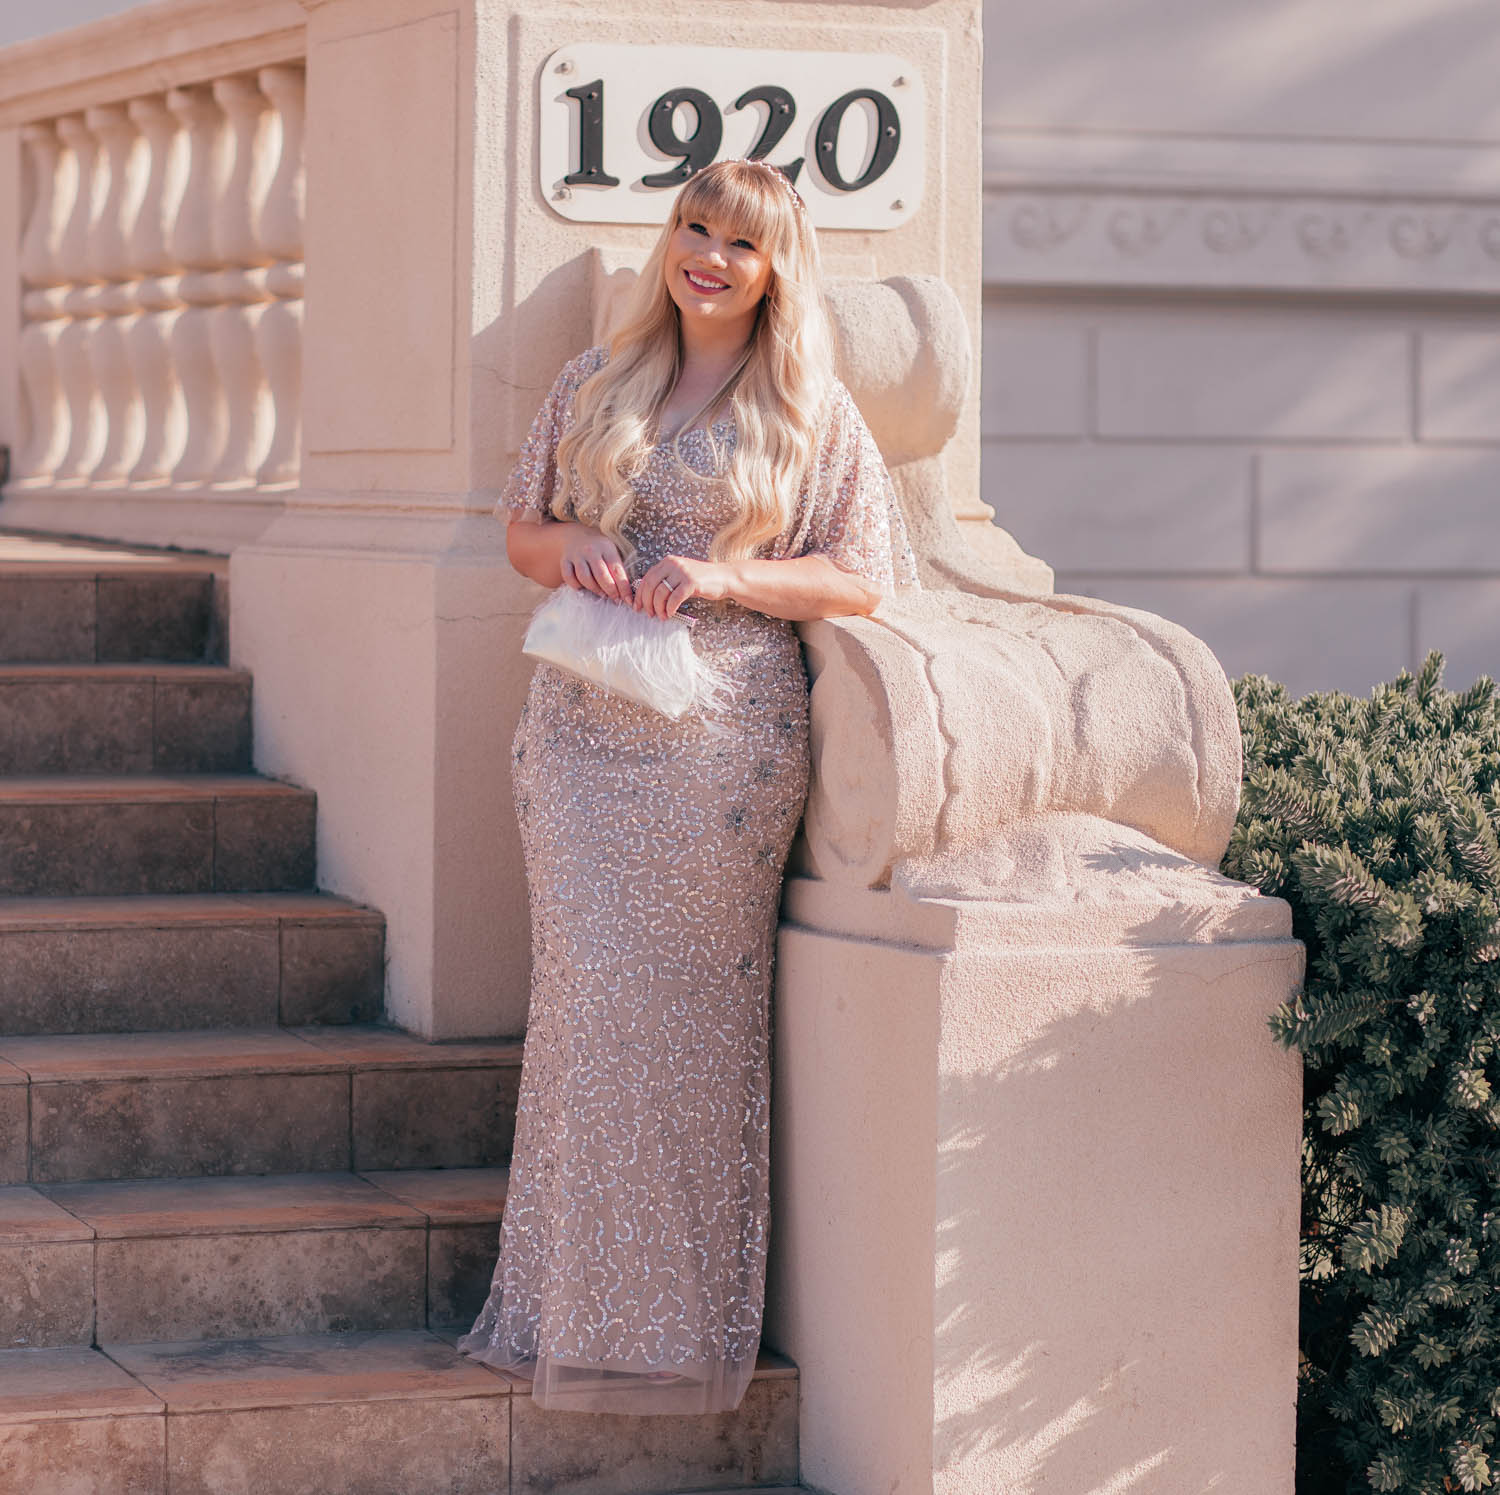 Feminine Fashion Blogger Elizabeth Hugen of Lizzie in Lace shares her Old Hollywood Glam Outfit Inspo with a glamorous Adrianna Papell sequin dress